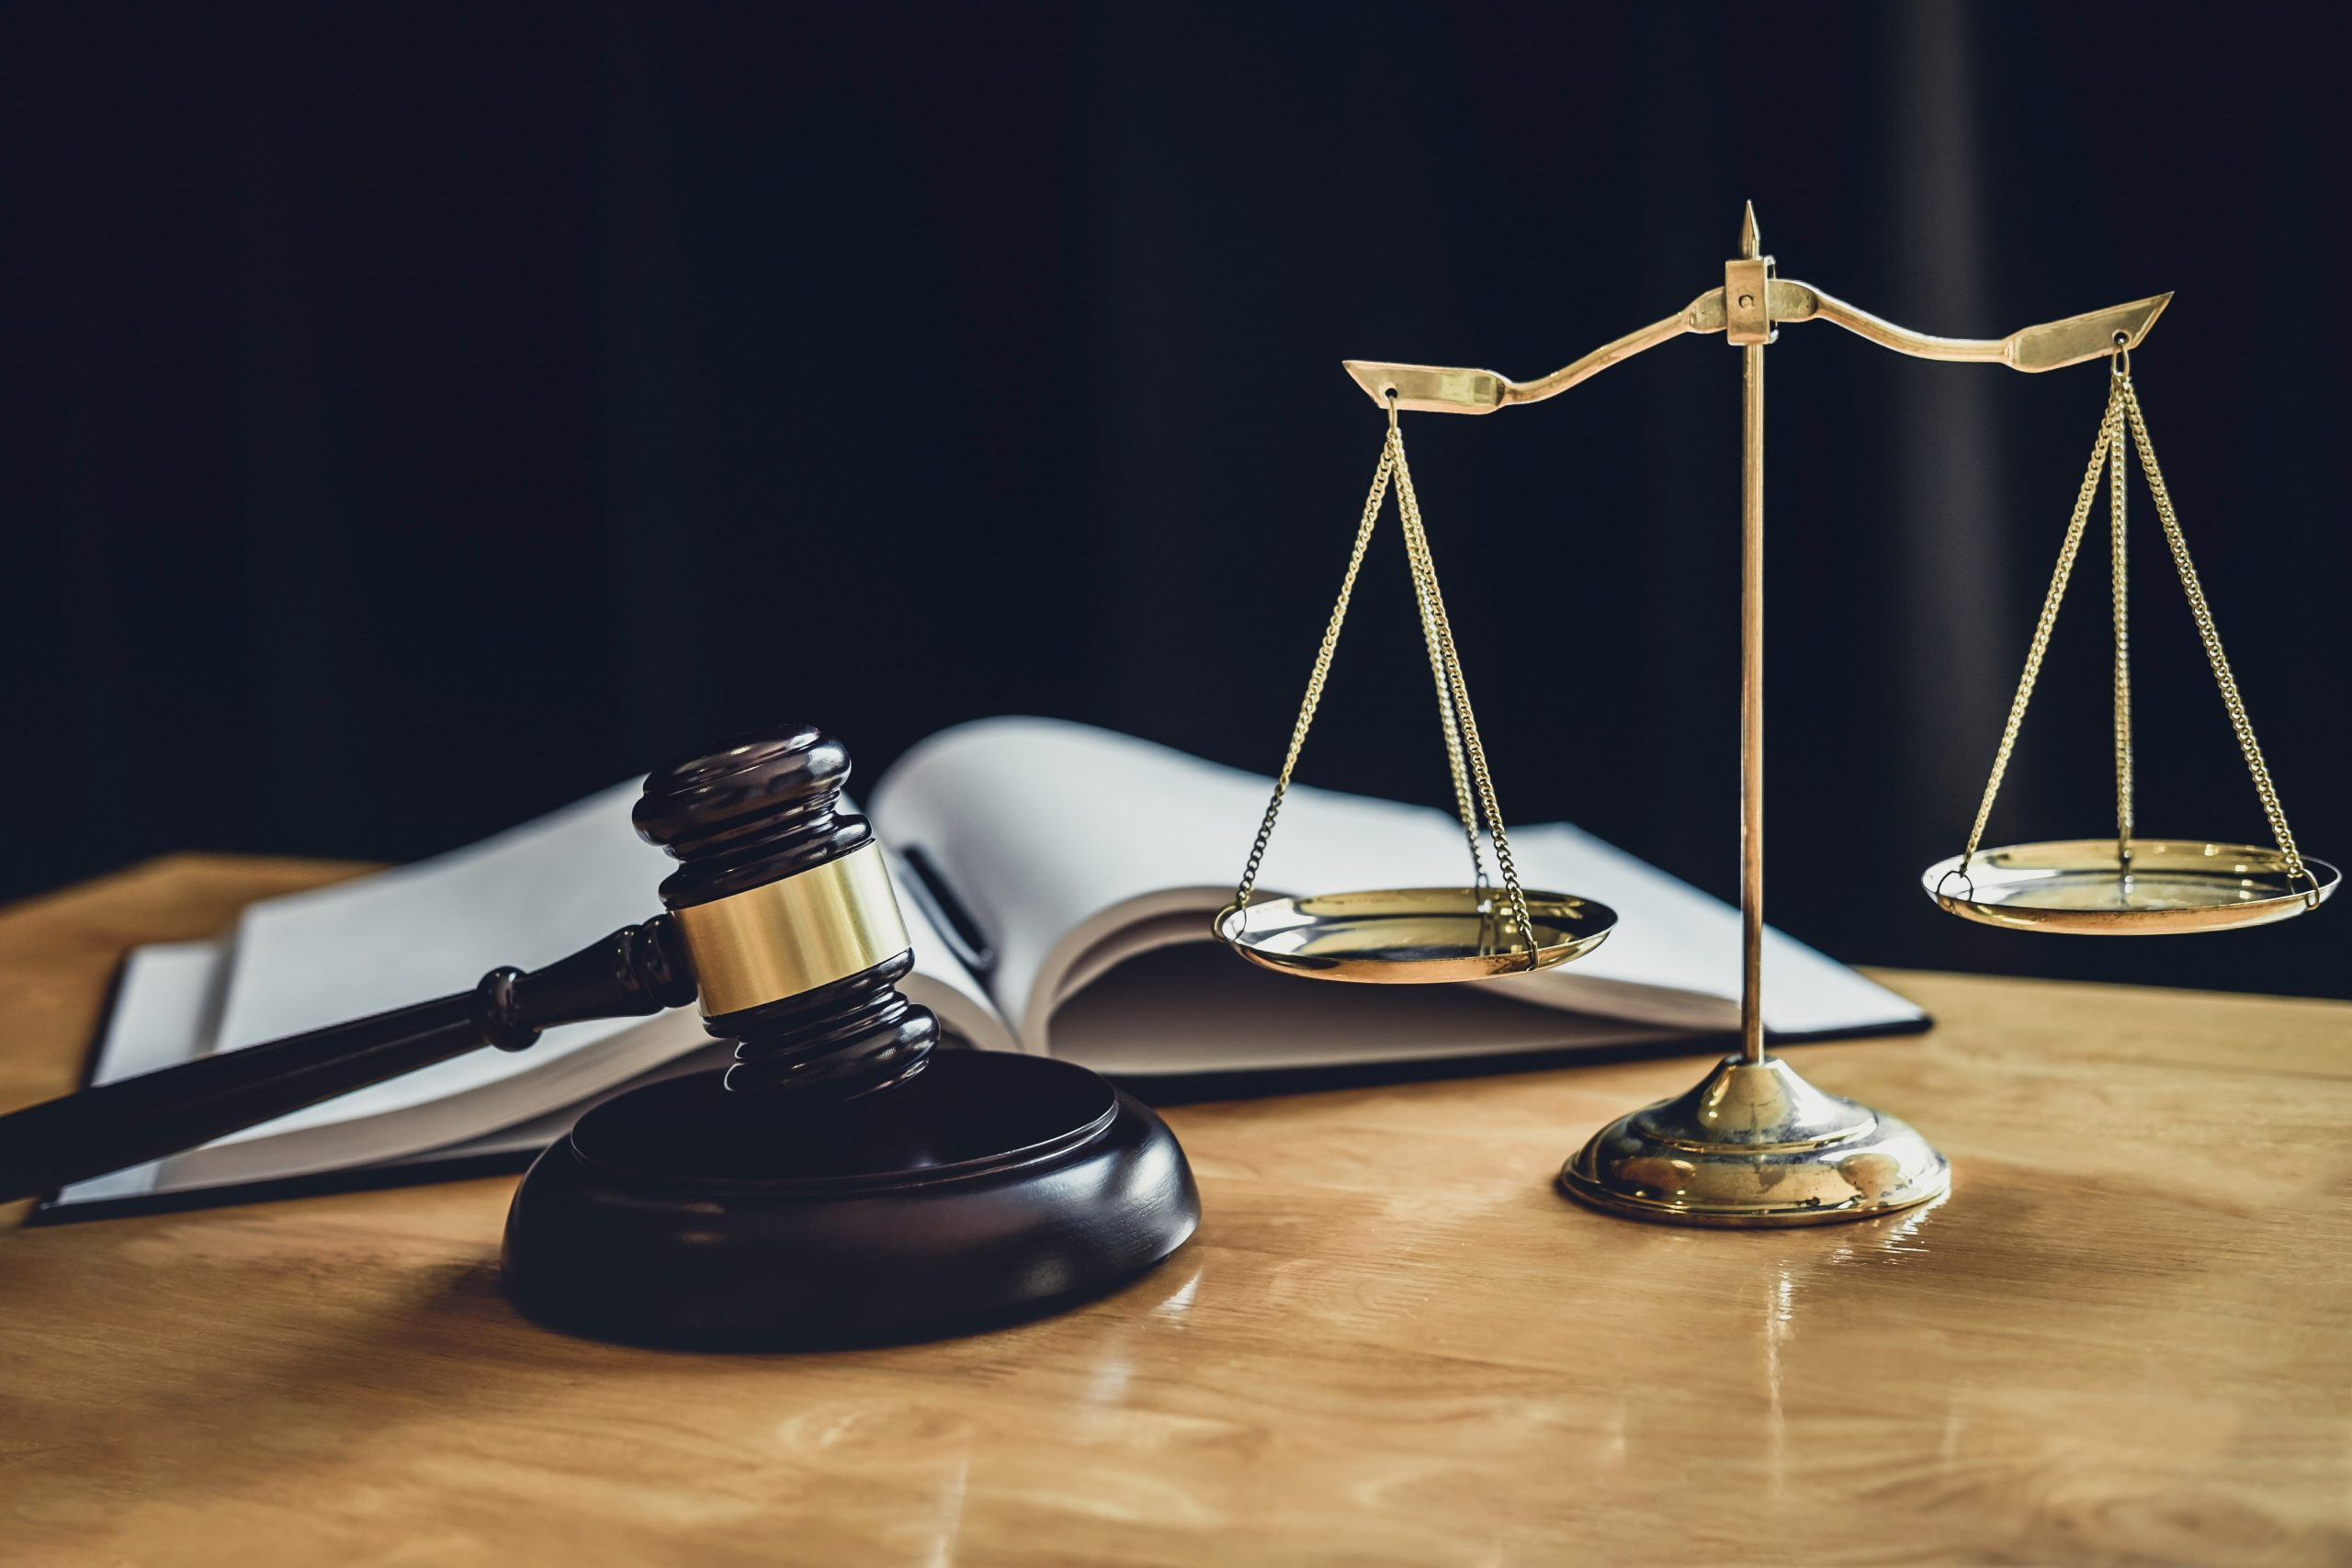 judge-gavel-with-scale-of-justice-476EMJZ-min